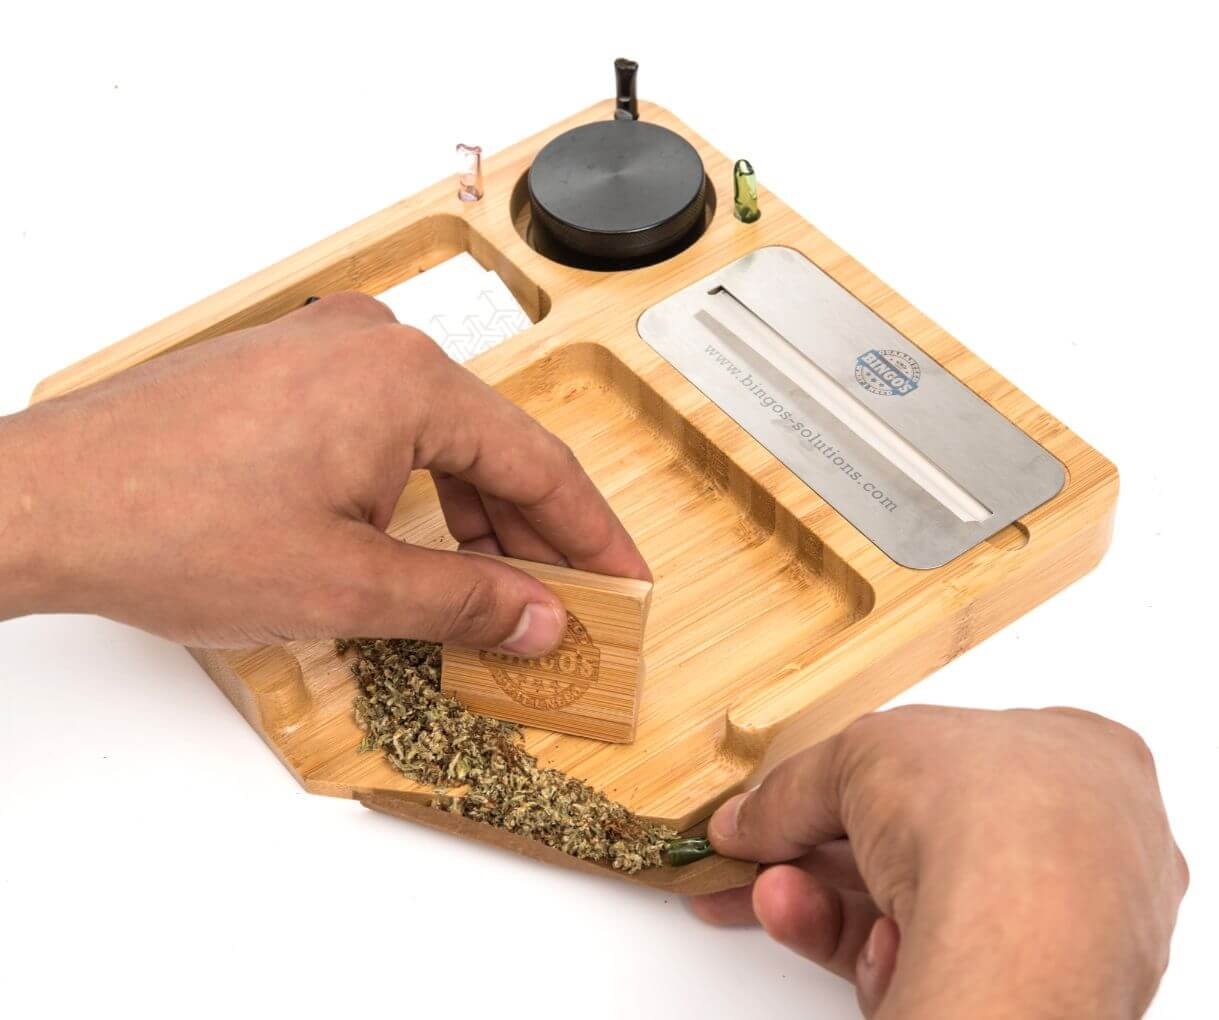 Bingo's Smart Rolling Tray models COMFORT Shows how to roll a joint or a blunt with glass tips and rolling tray